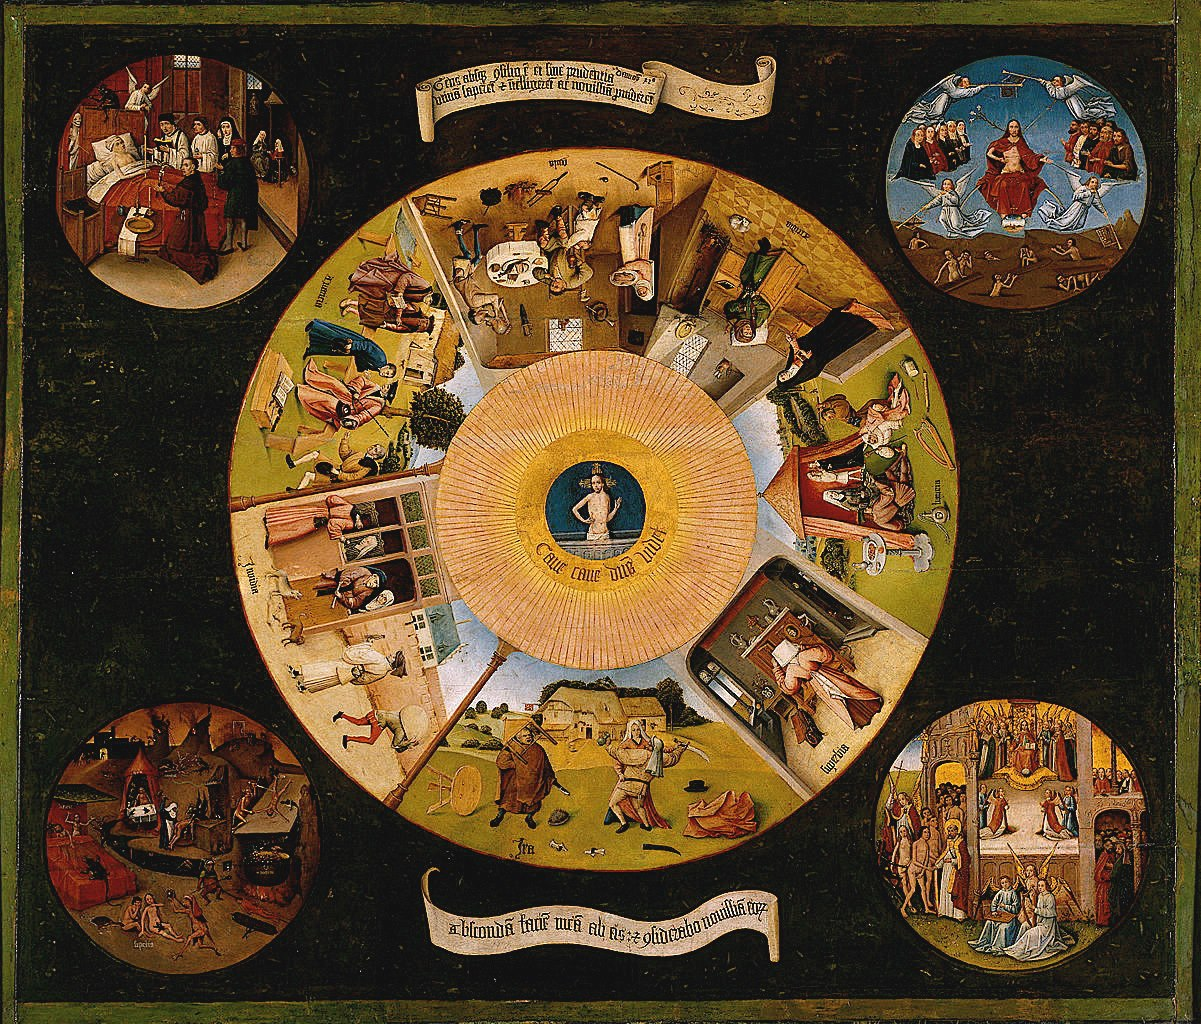 The Seven Deadly Sins and the Four Last Things c. 1500 By Hieronymus Bosch Jheronimus van Aken c. 1450Aug. 9th 1516